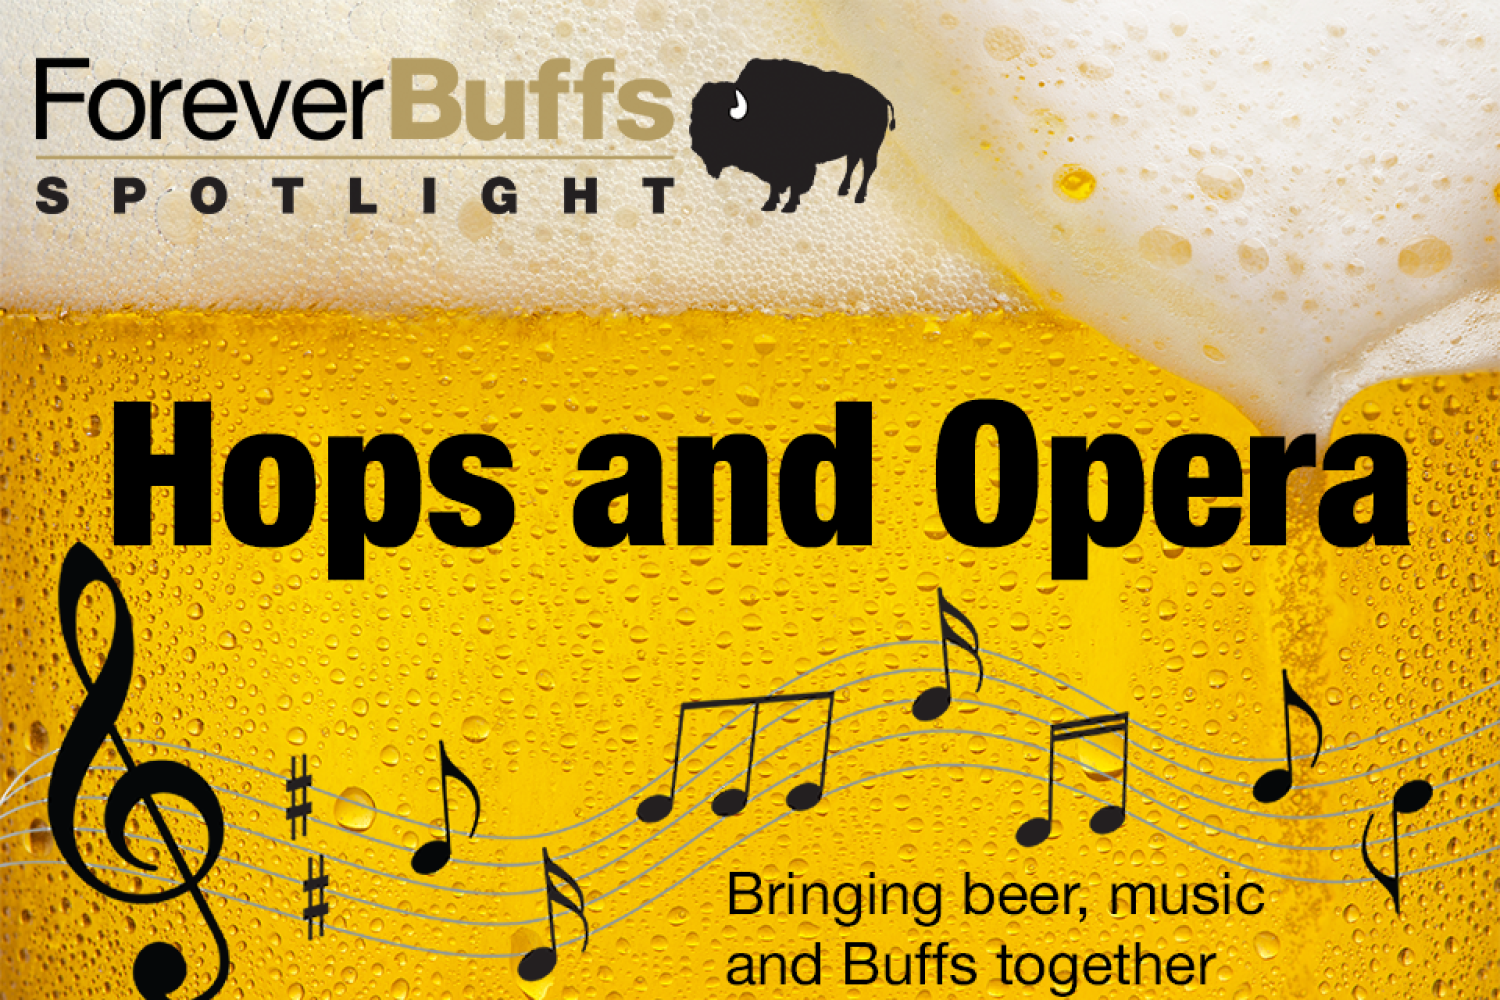 Join us for Hops and Opera